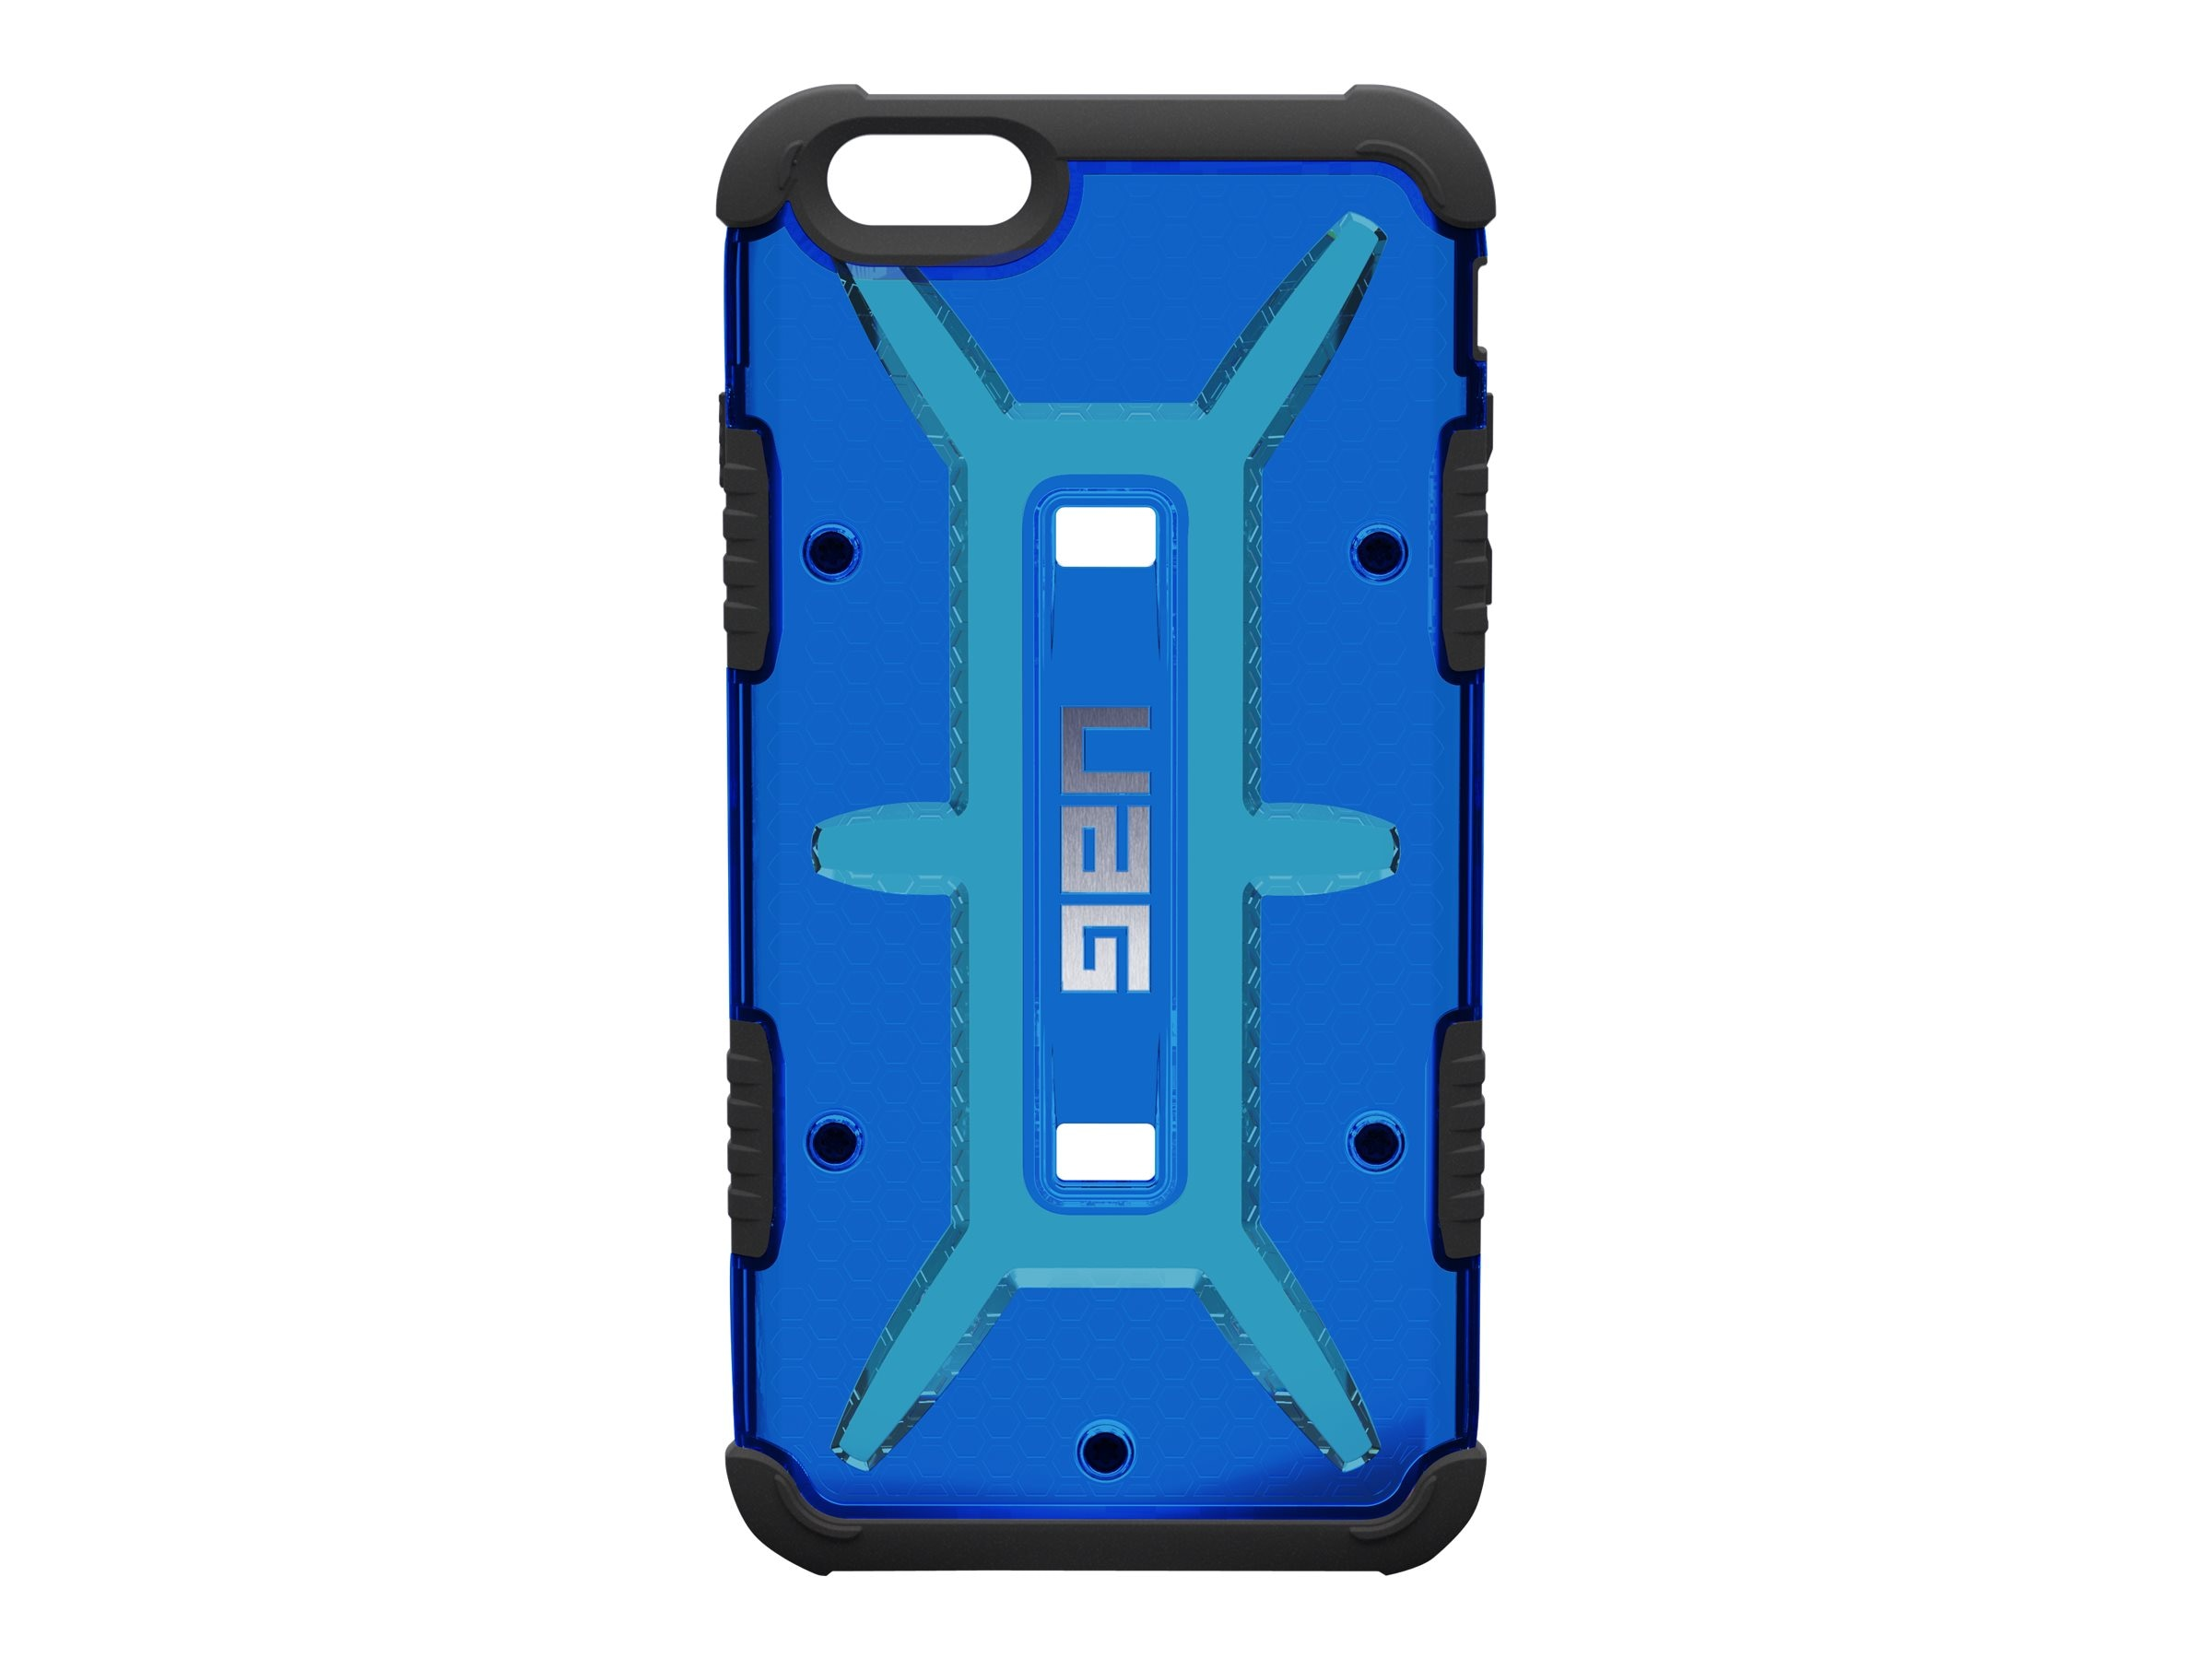 Urban Armor Cobalt Case iPhone 6 6s Plus, Blue, UAG-IPH6/6SPLS-CBT-VP